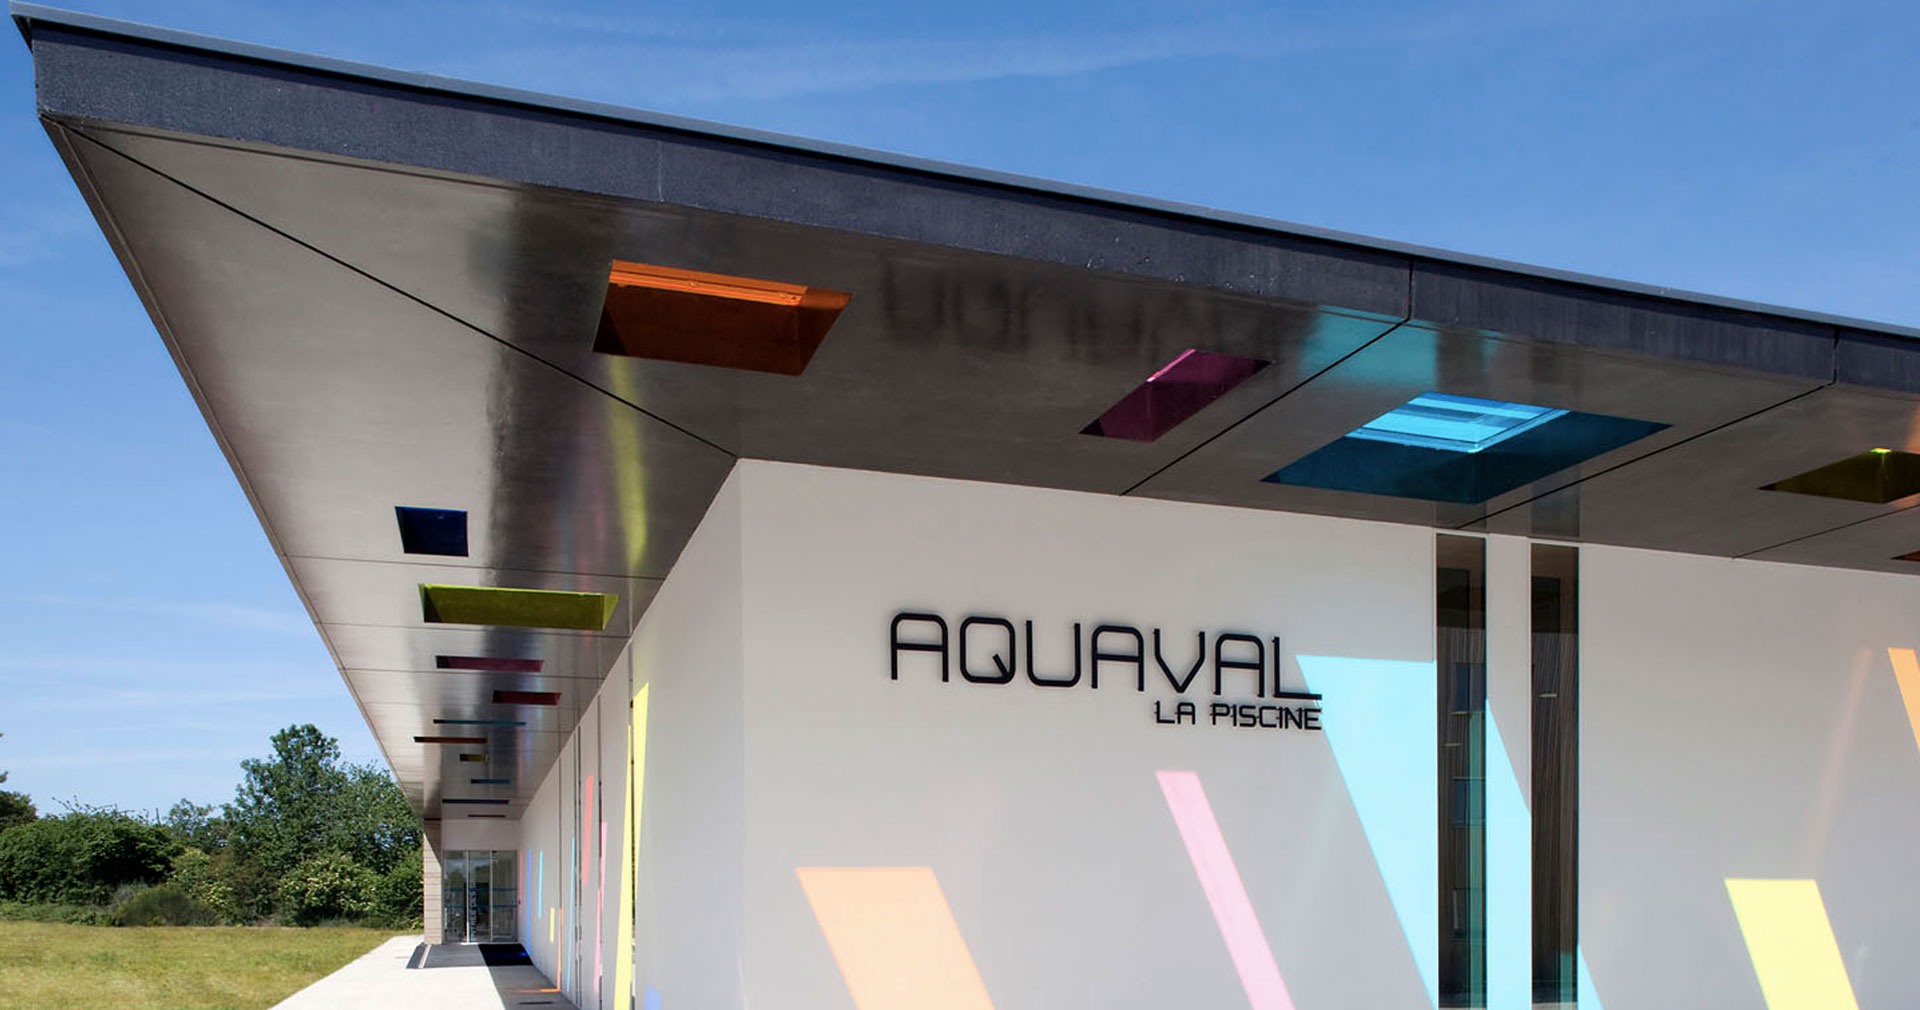 Aquaval projet pilote hqe tna architectes paris for Piscine aquaval